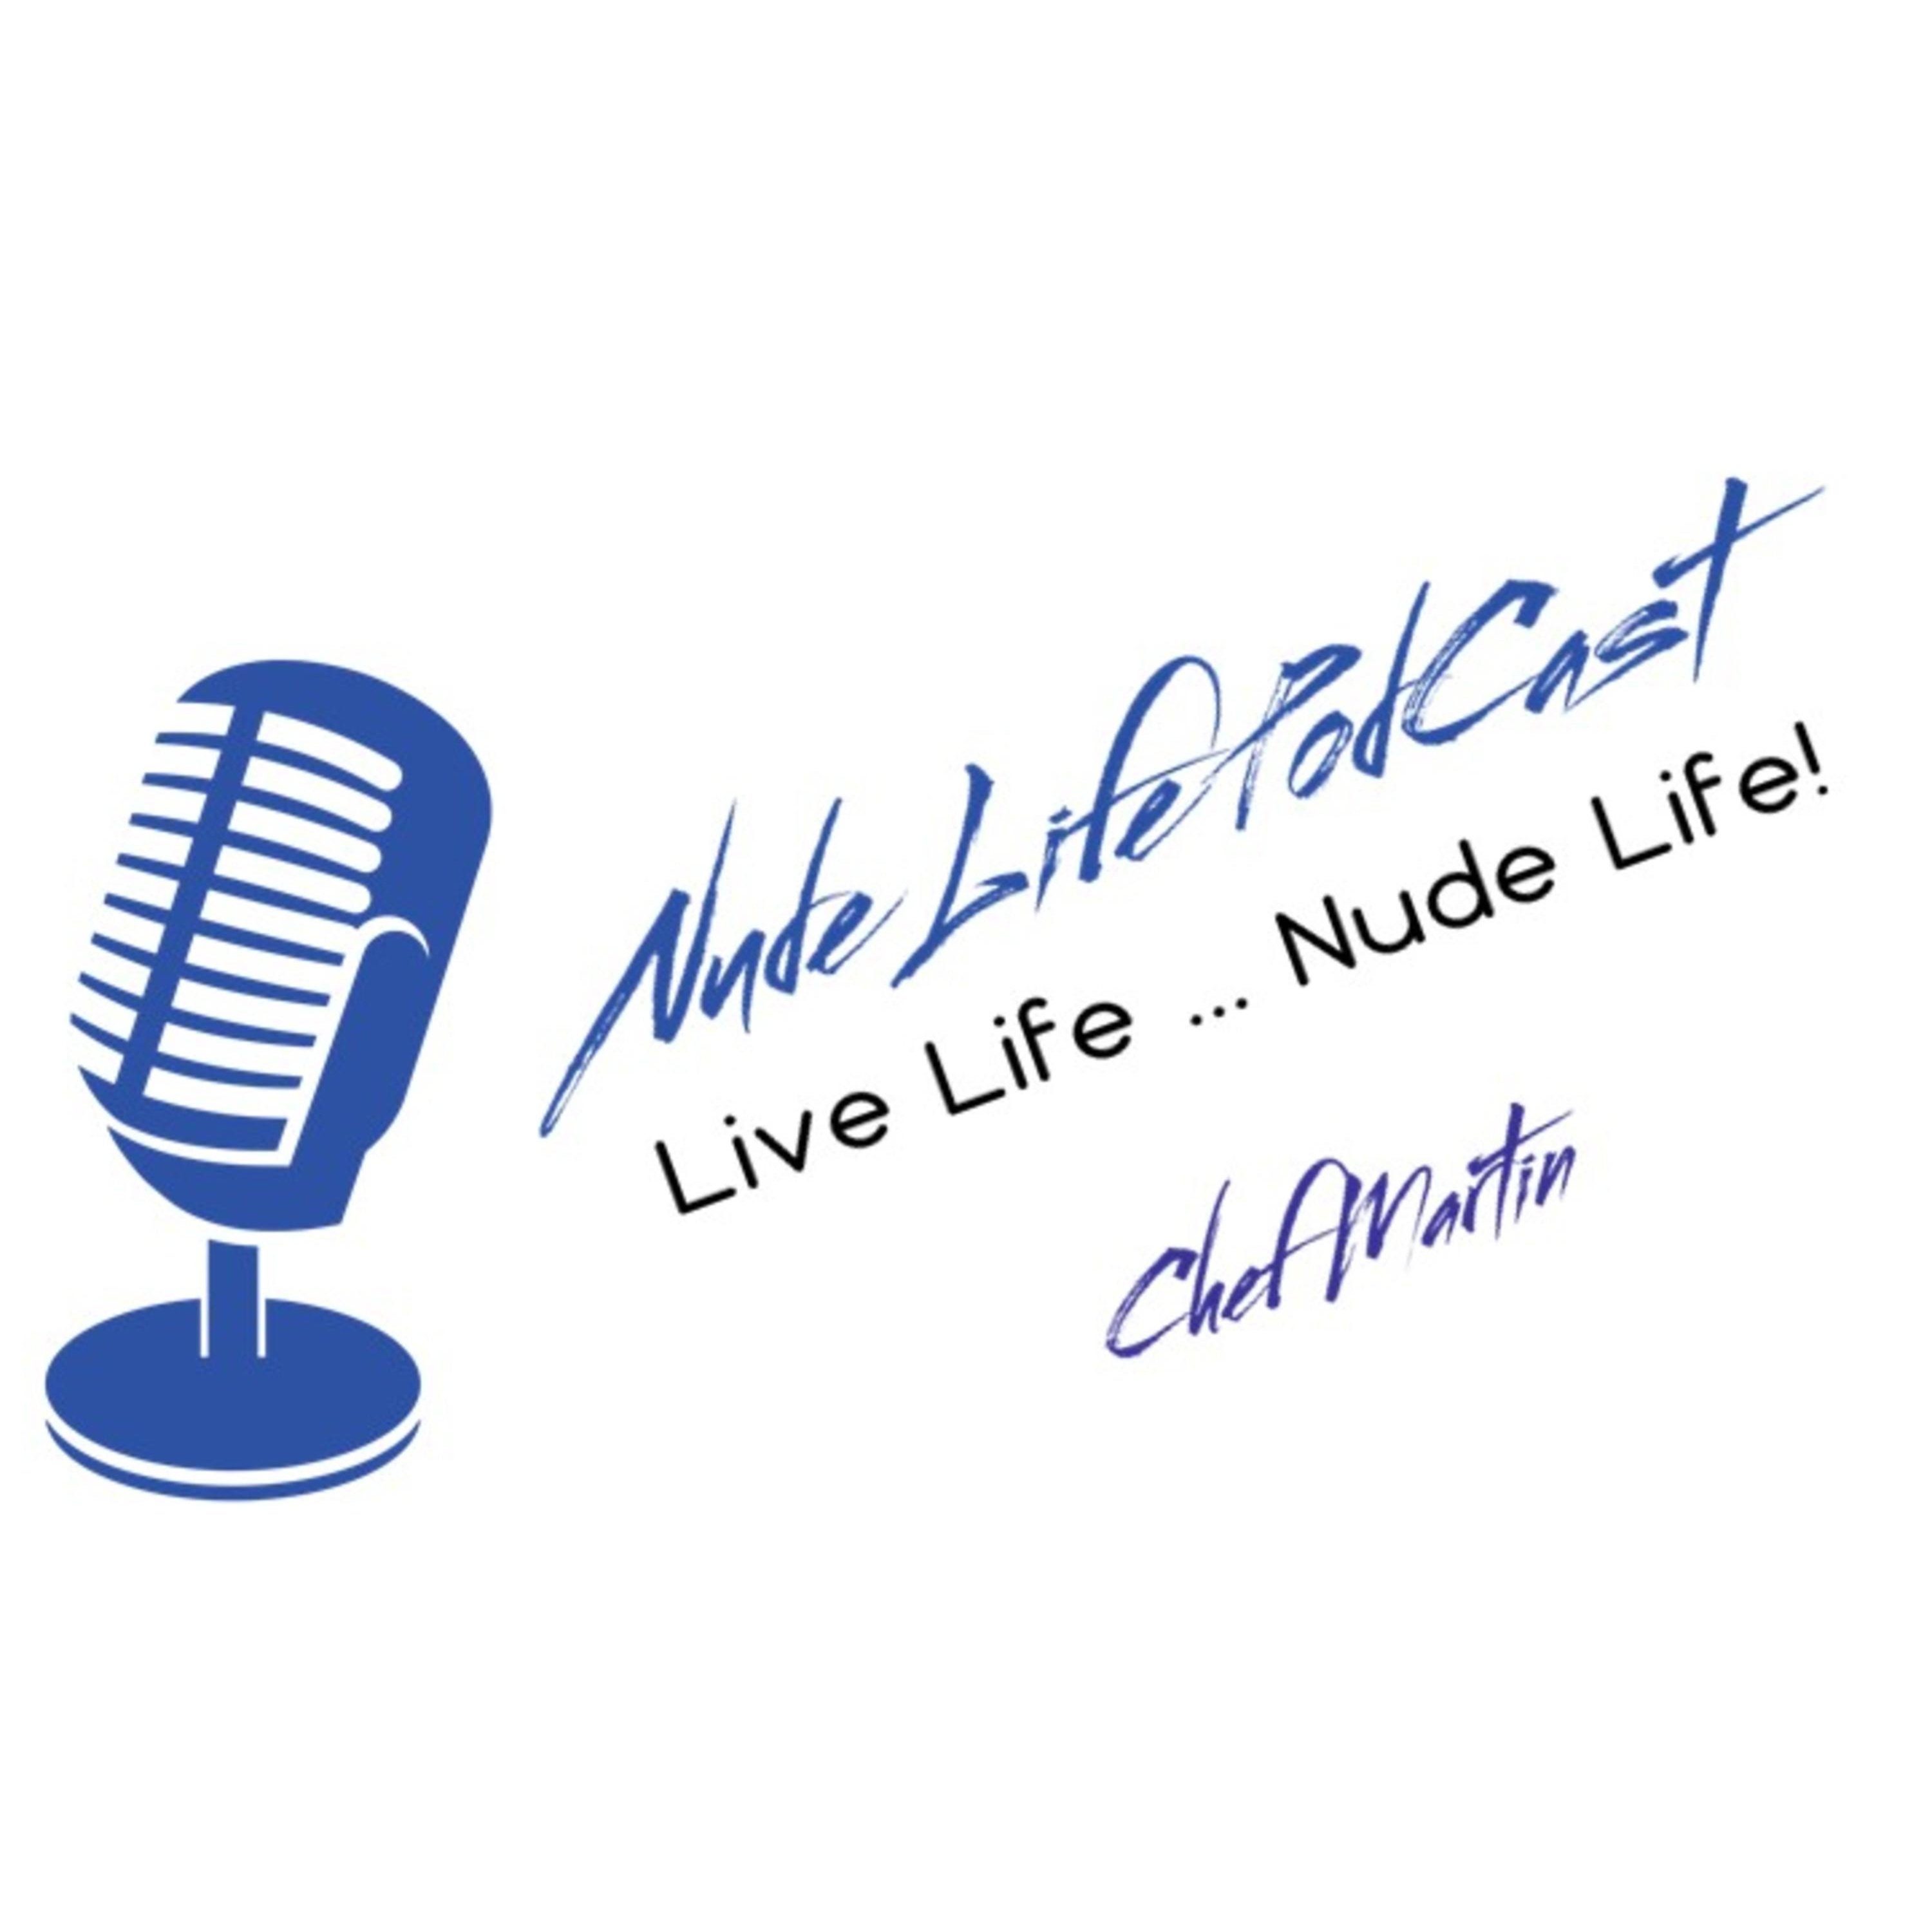 Join nudist etiquette erection topic